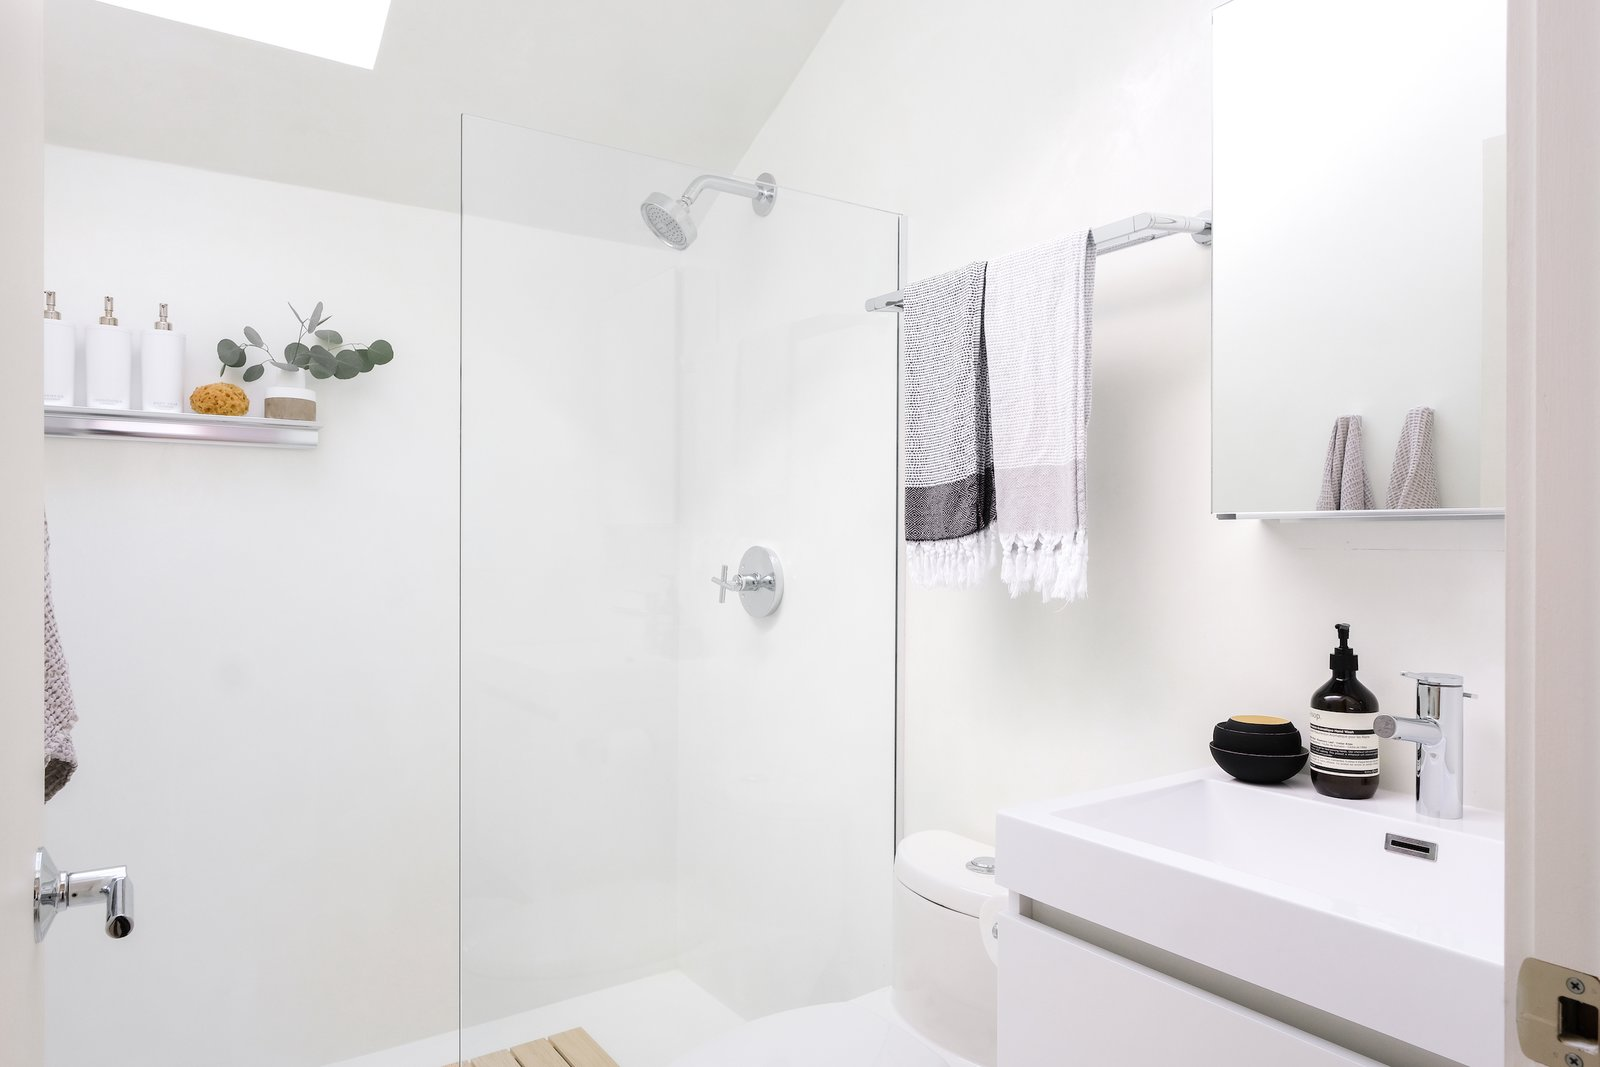 Bath Room, One Piece Toilet, Open Shower, Ceiling Lighting, Wall Mount Sink, Concrete Counter, Concrete Floor, and Concrete Wall The bathroom is bright, clean and beautiful - everything you want a bathroom to be.  Best Photos from 111 House